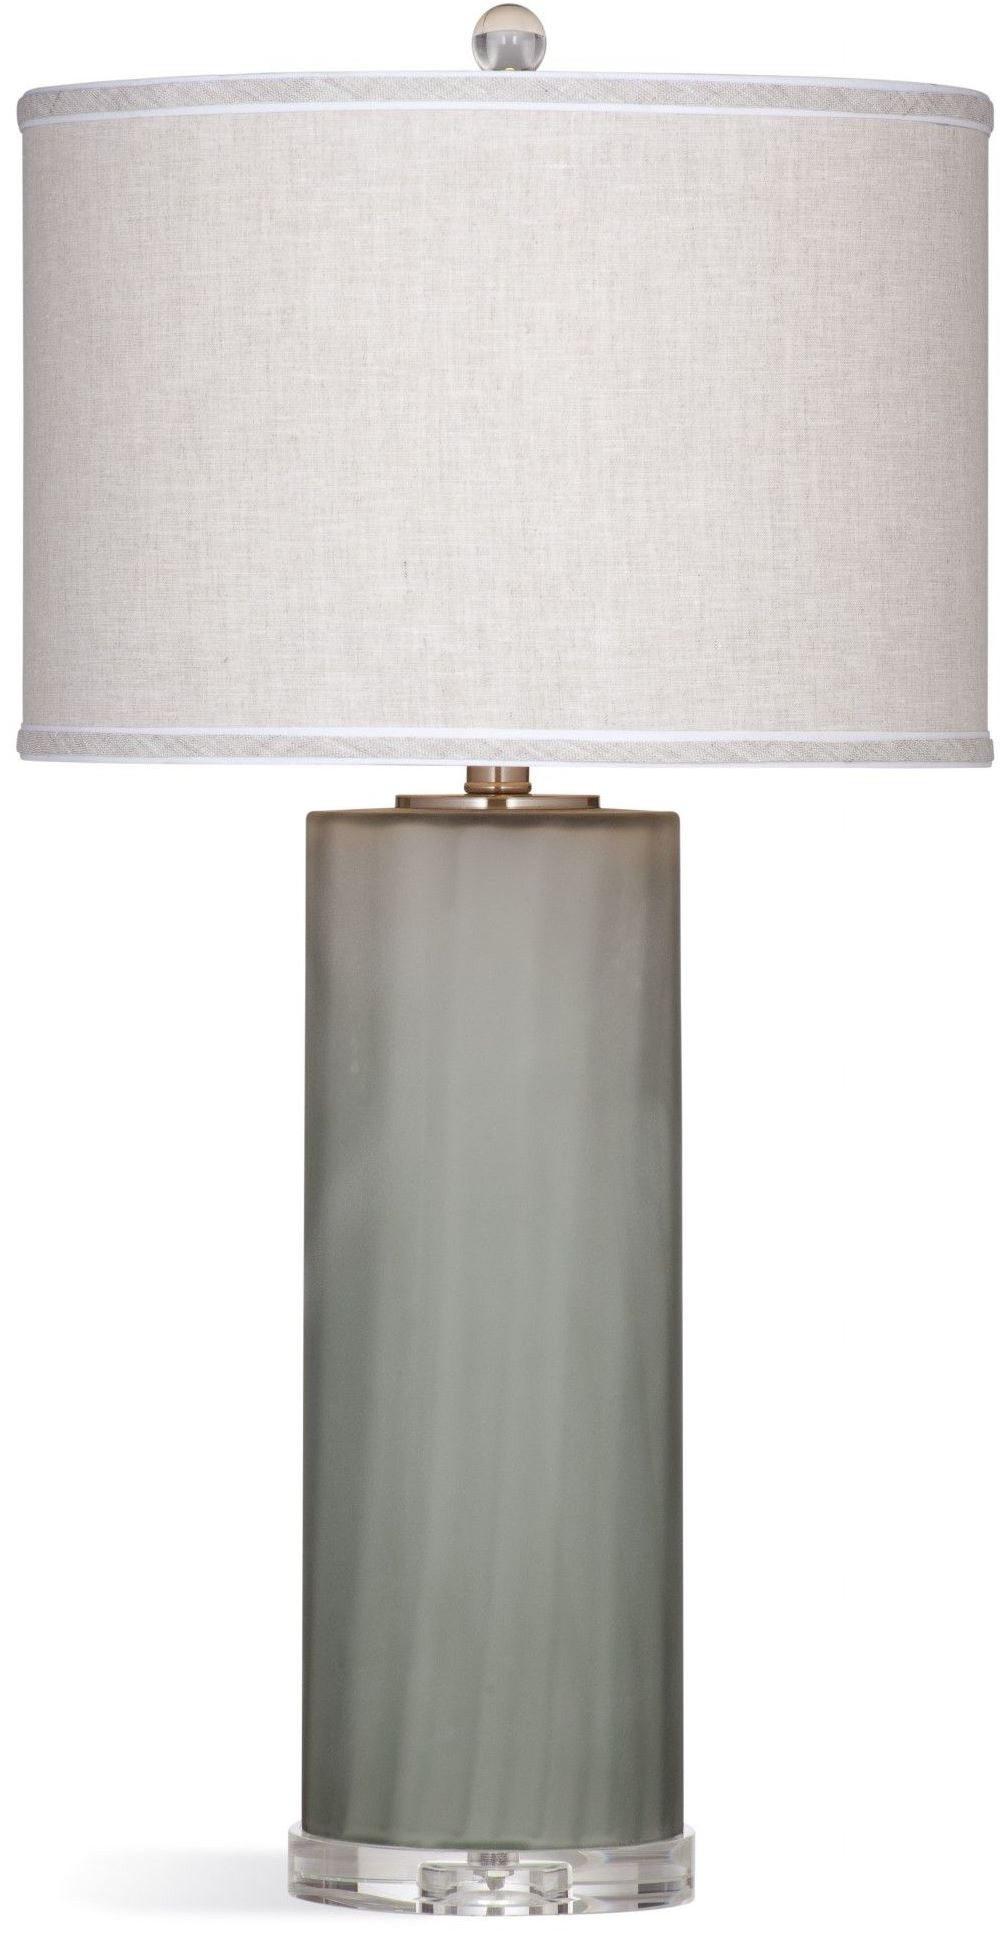 Hanna table lamp from bassett mirror coleman furniture for Table hanna